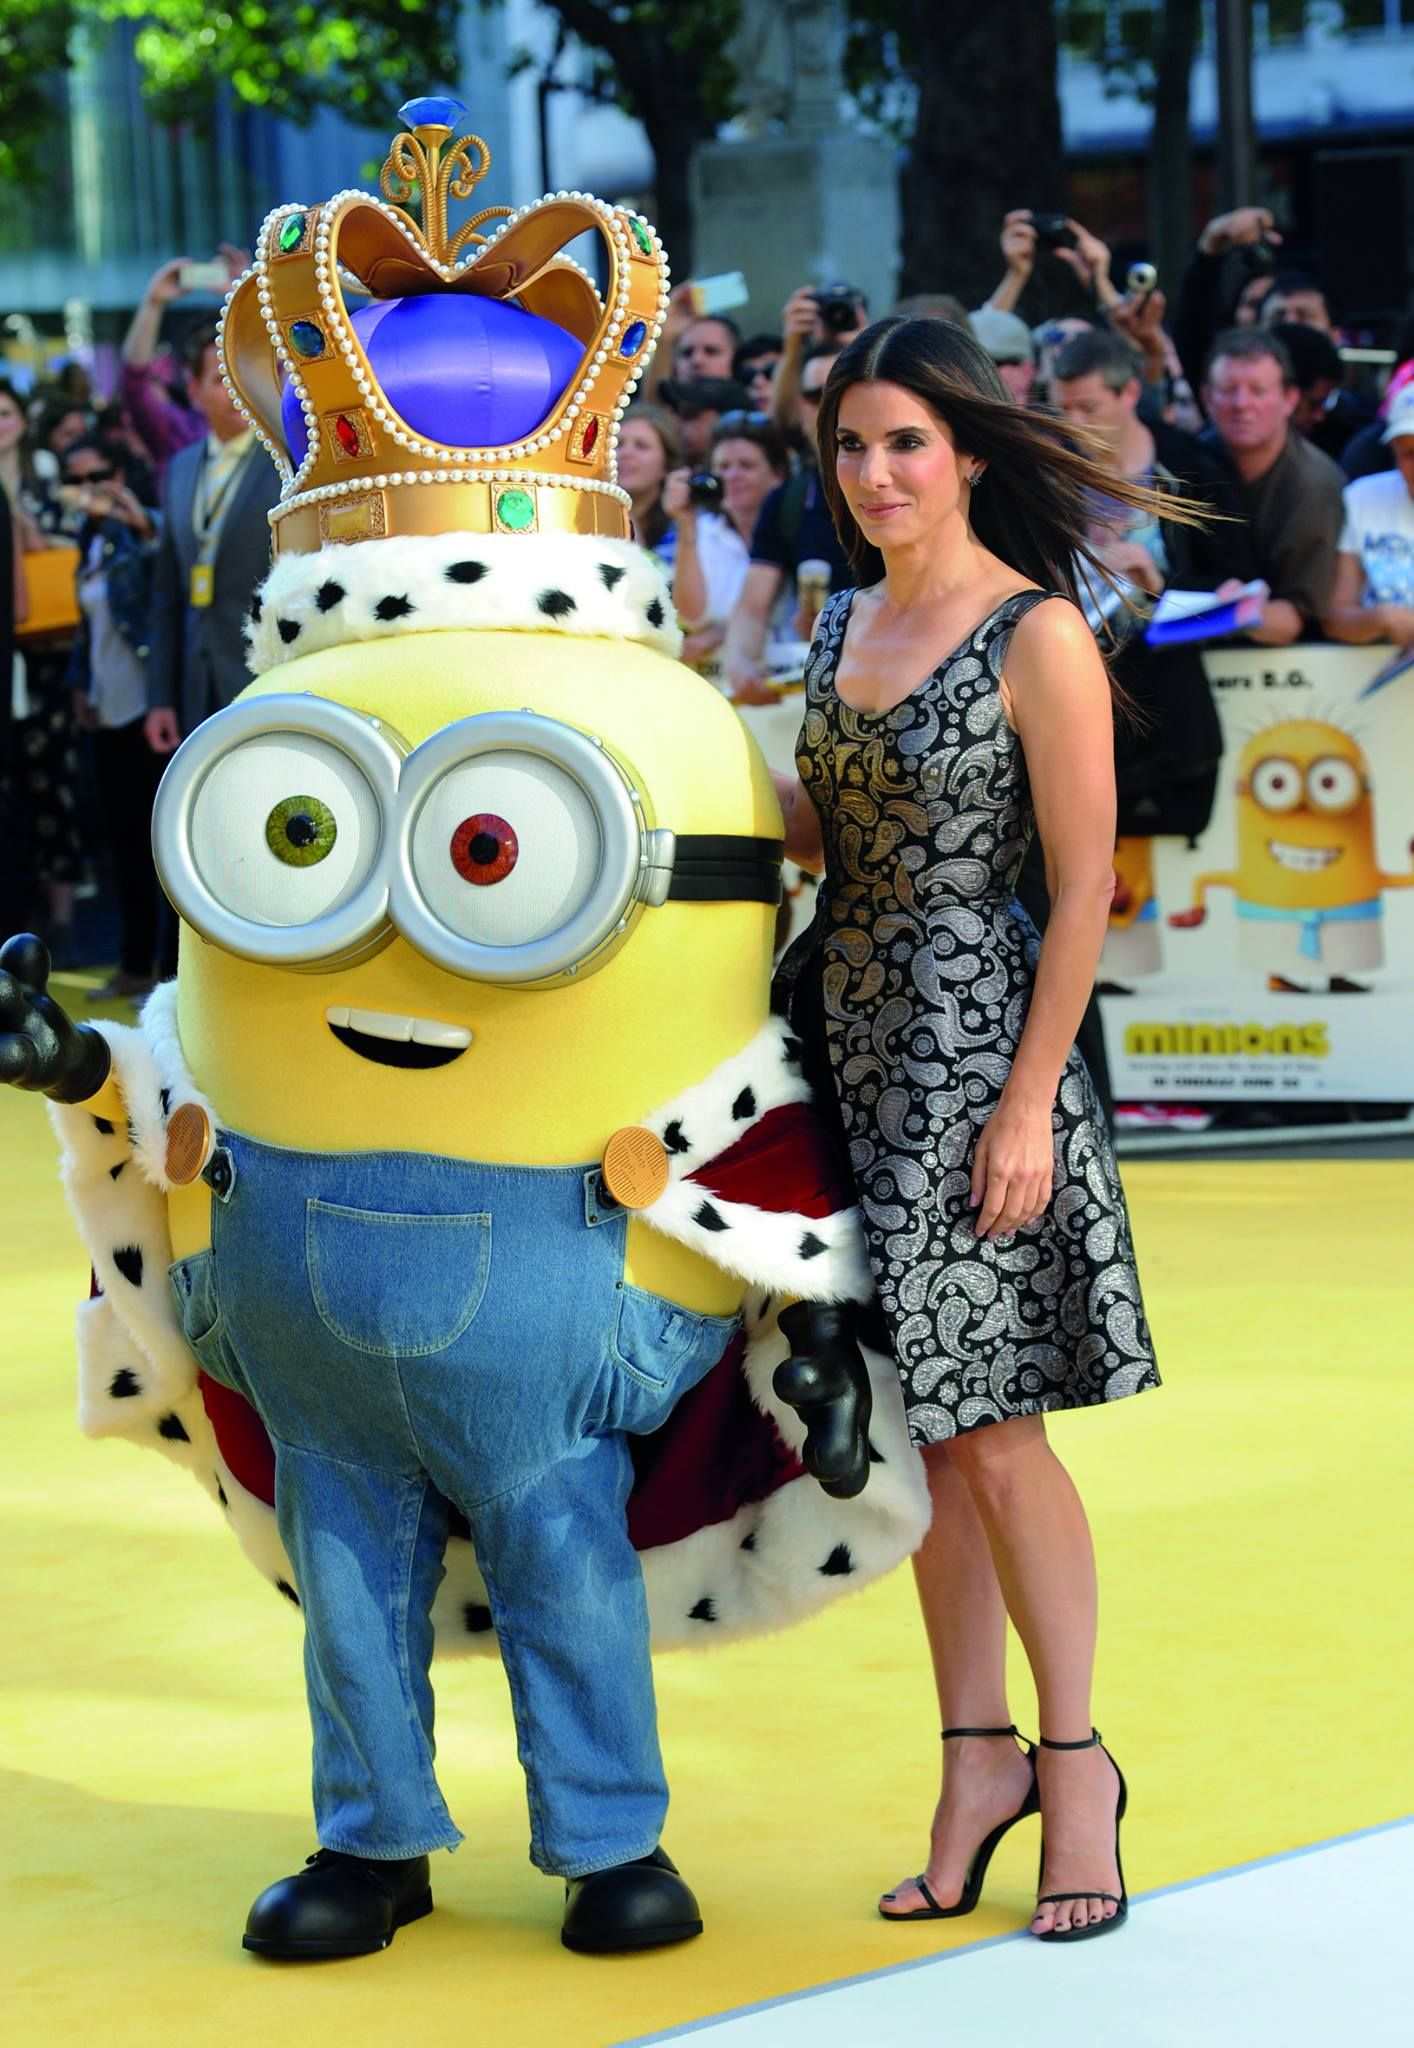 Wearing yellow dress quotes  Sandra Bullock Scarlet Overkill looking stunning but not wearing